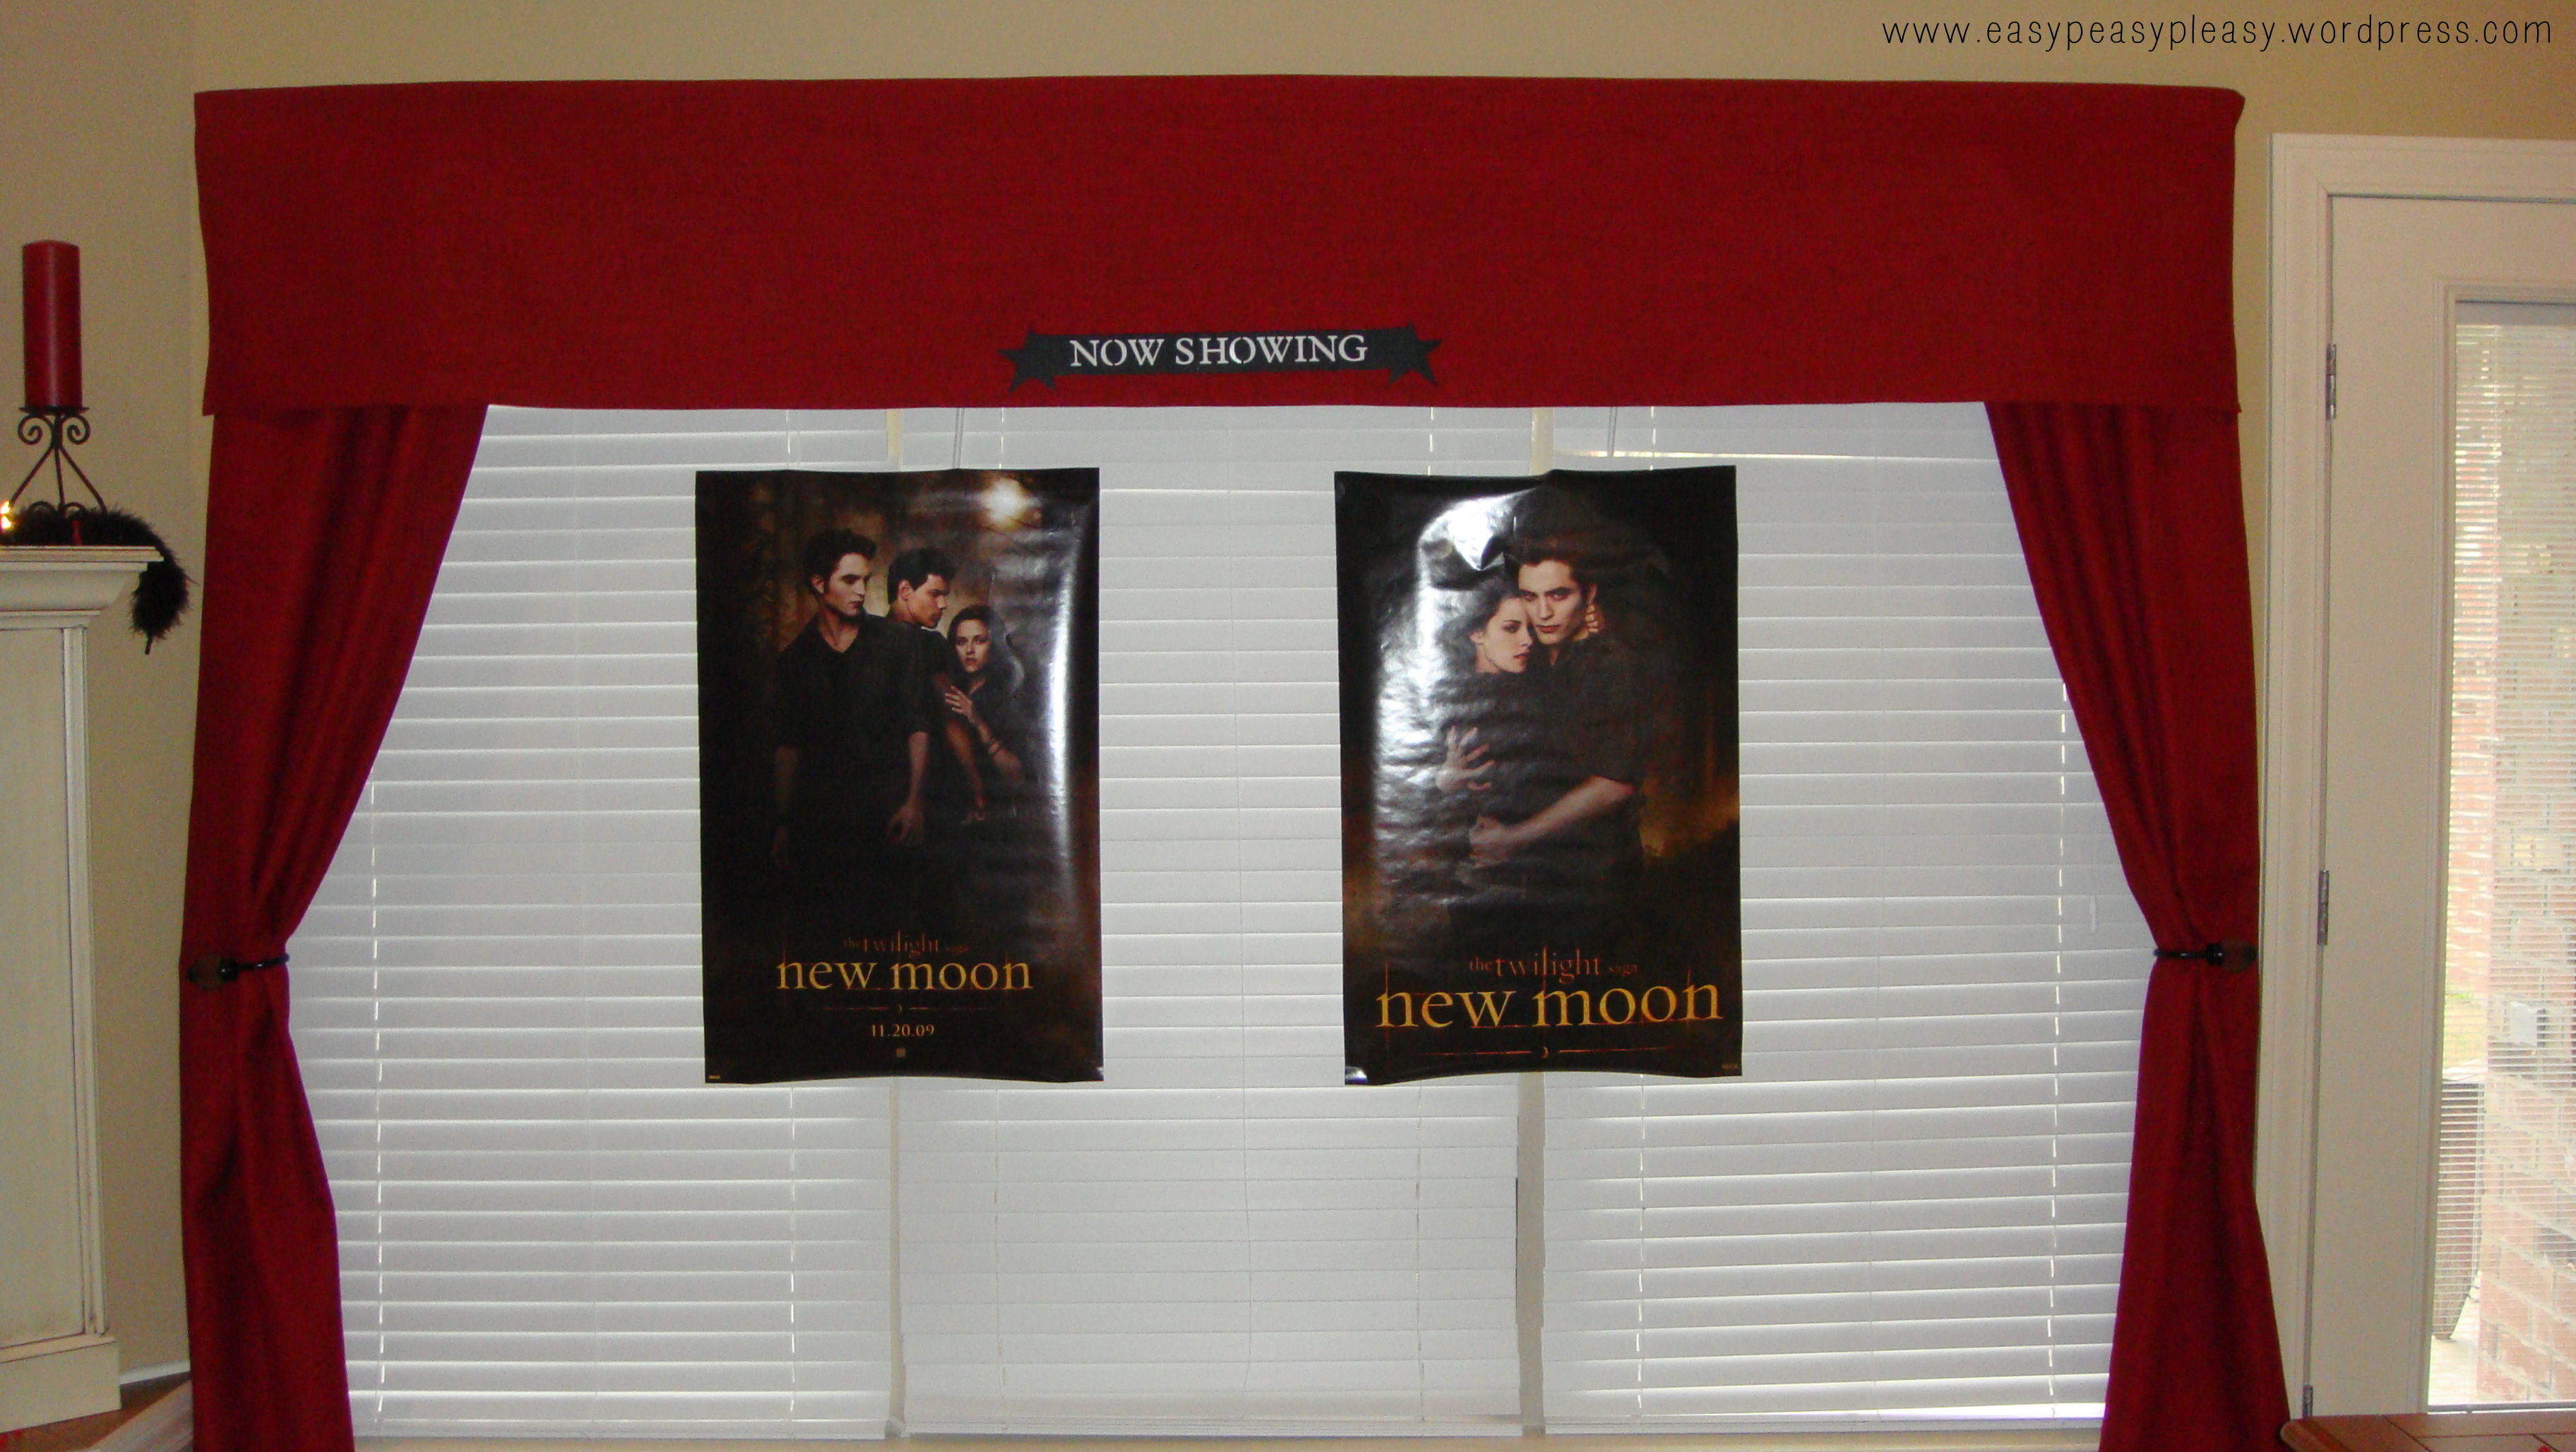 Twilight New Moon Party Now Showing Display